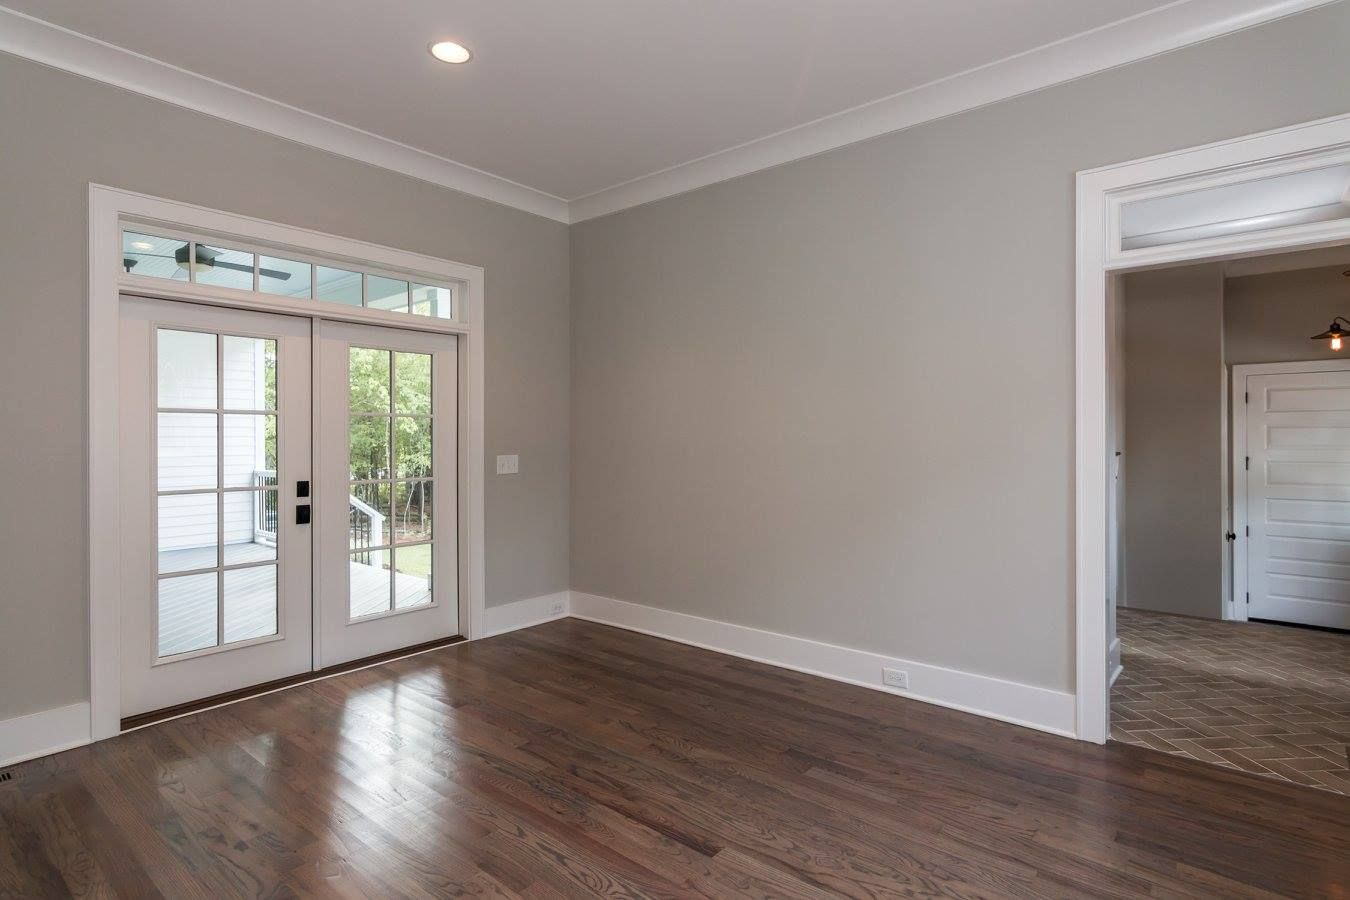 Garmanhomes Biz Agreeable Gray By Sherwin Williams These Are